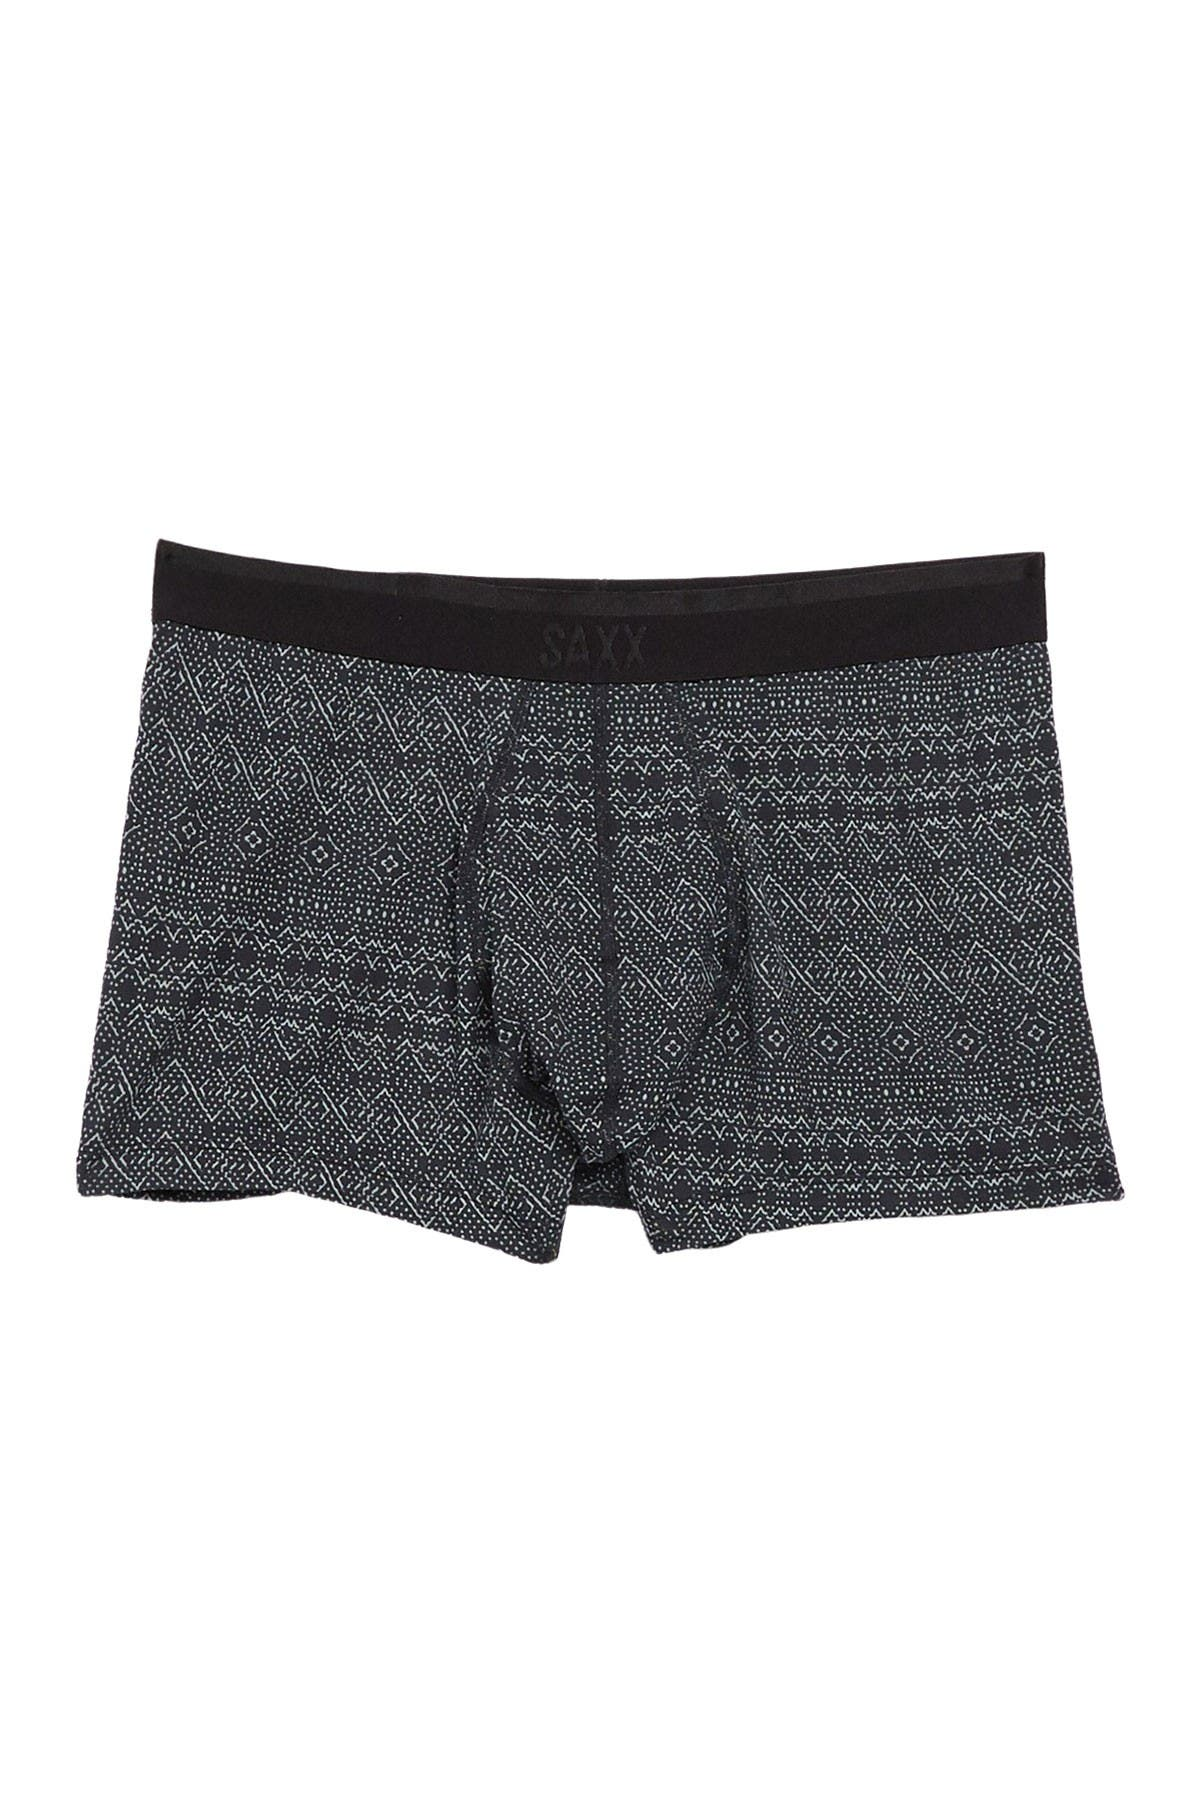 Image of SAXX Platinum Patterned Trunks